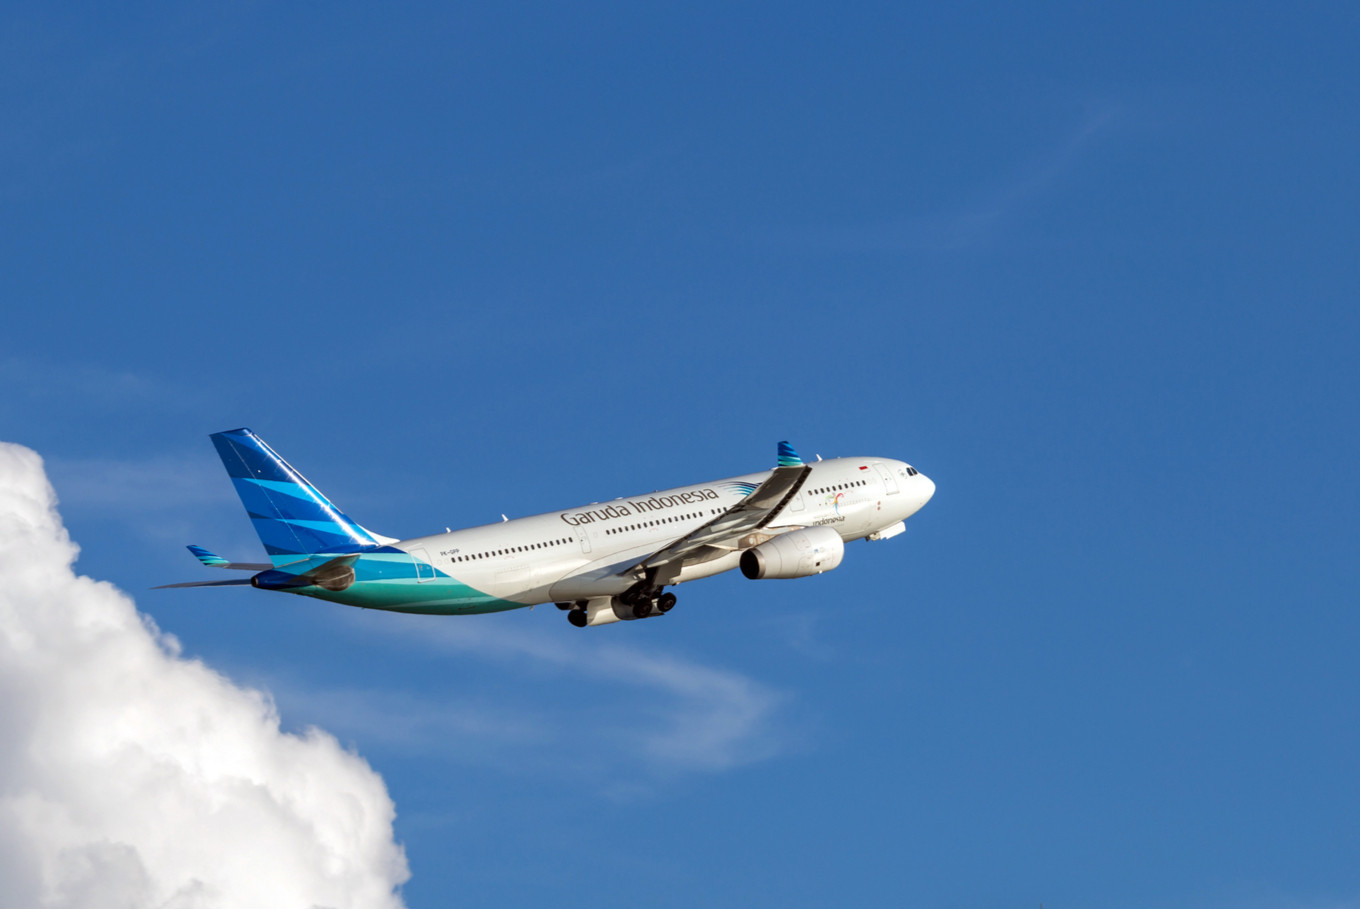 Garuda Indonesia appoints new directors, commissioners to repair reputation